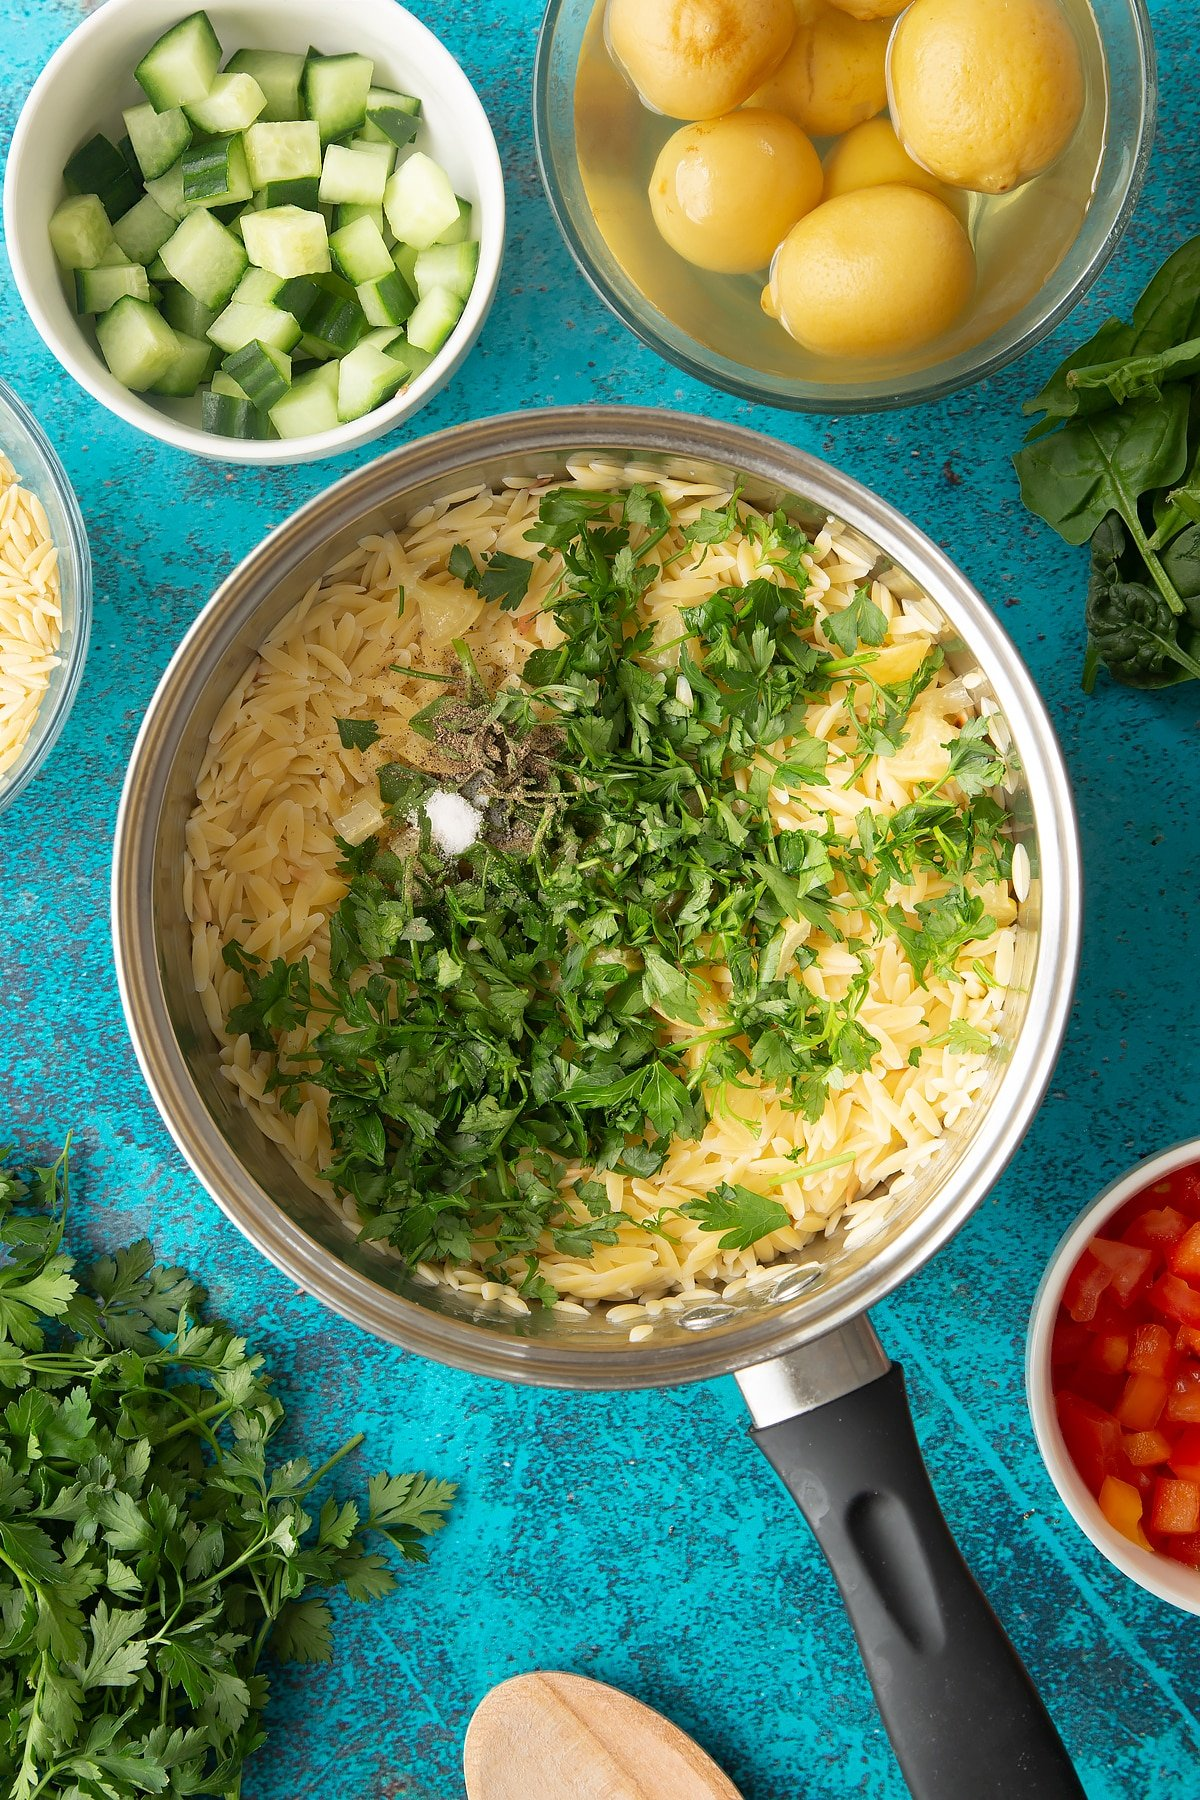 Cooked orzo in a saucepan with preserved lemons, parsley, salt and pepper on top.